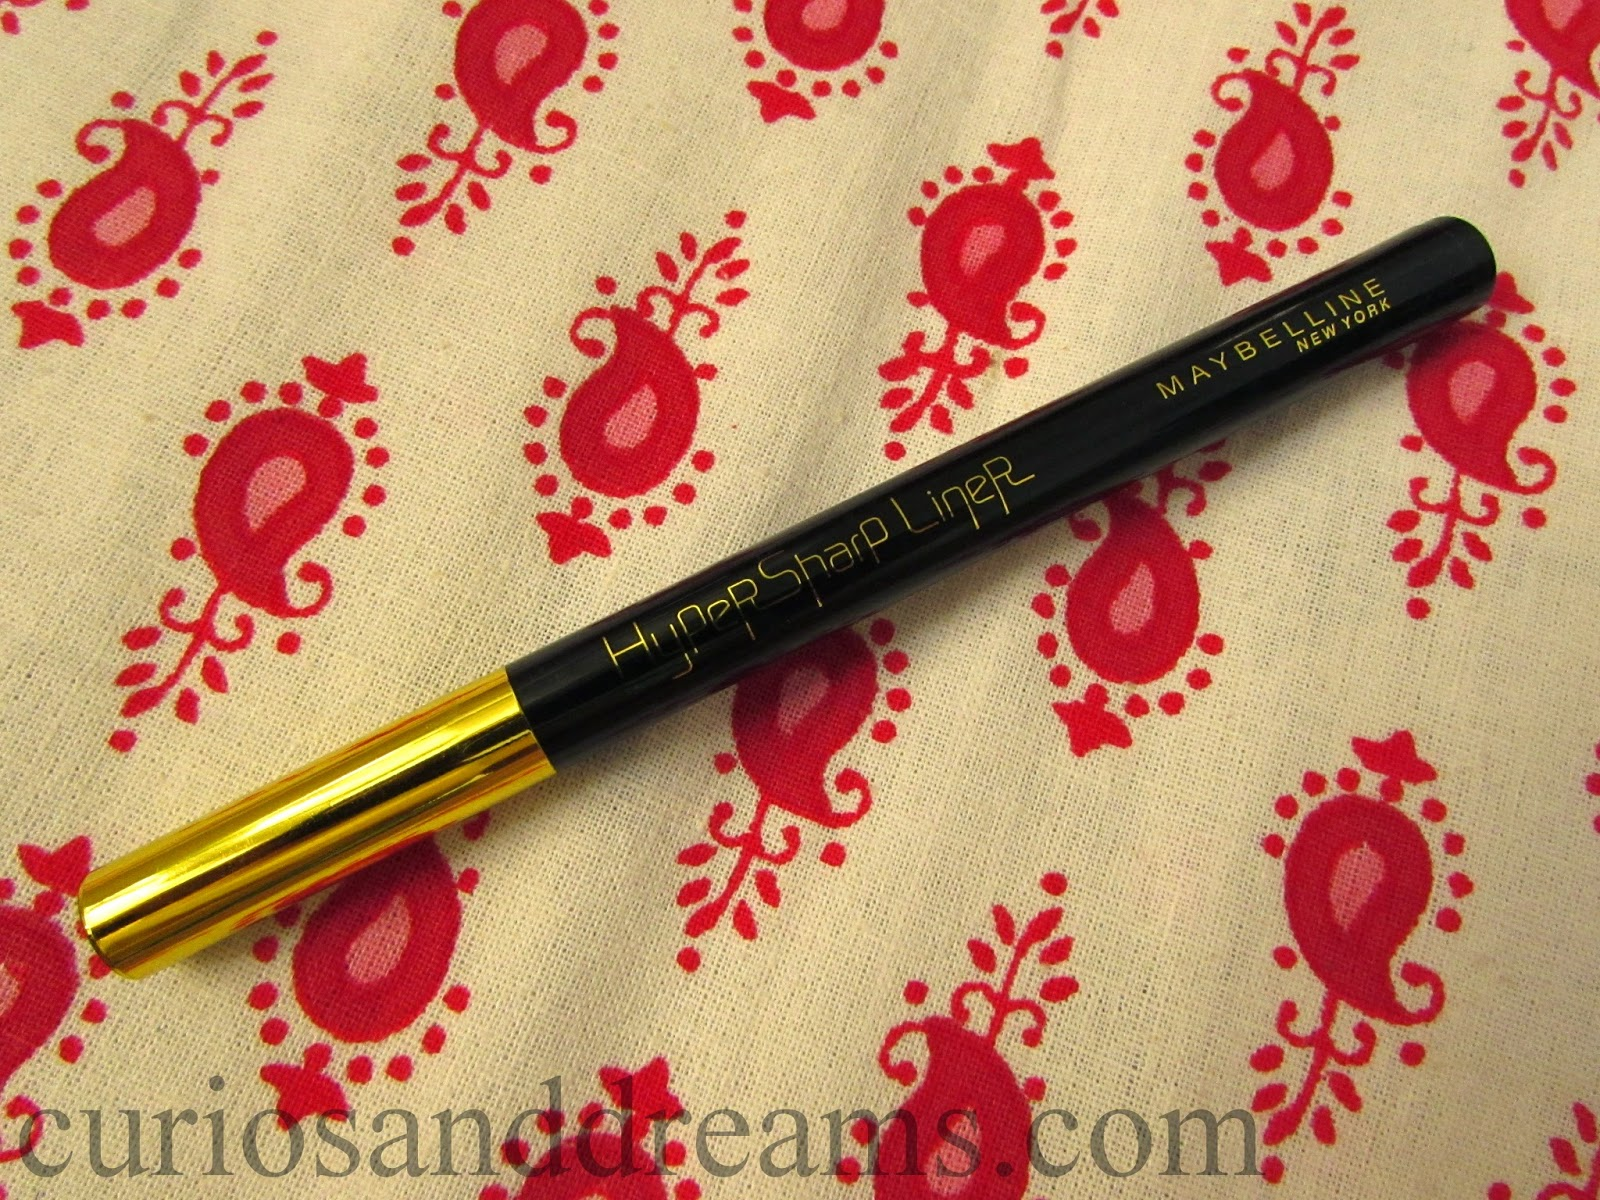 Maybelline HyperSharp Liner Review